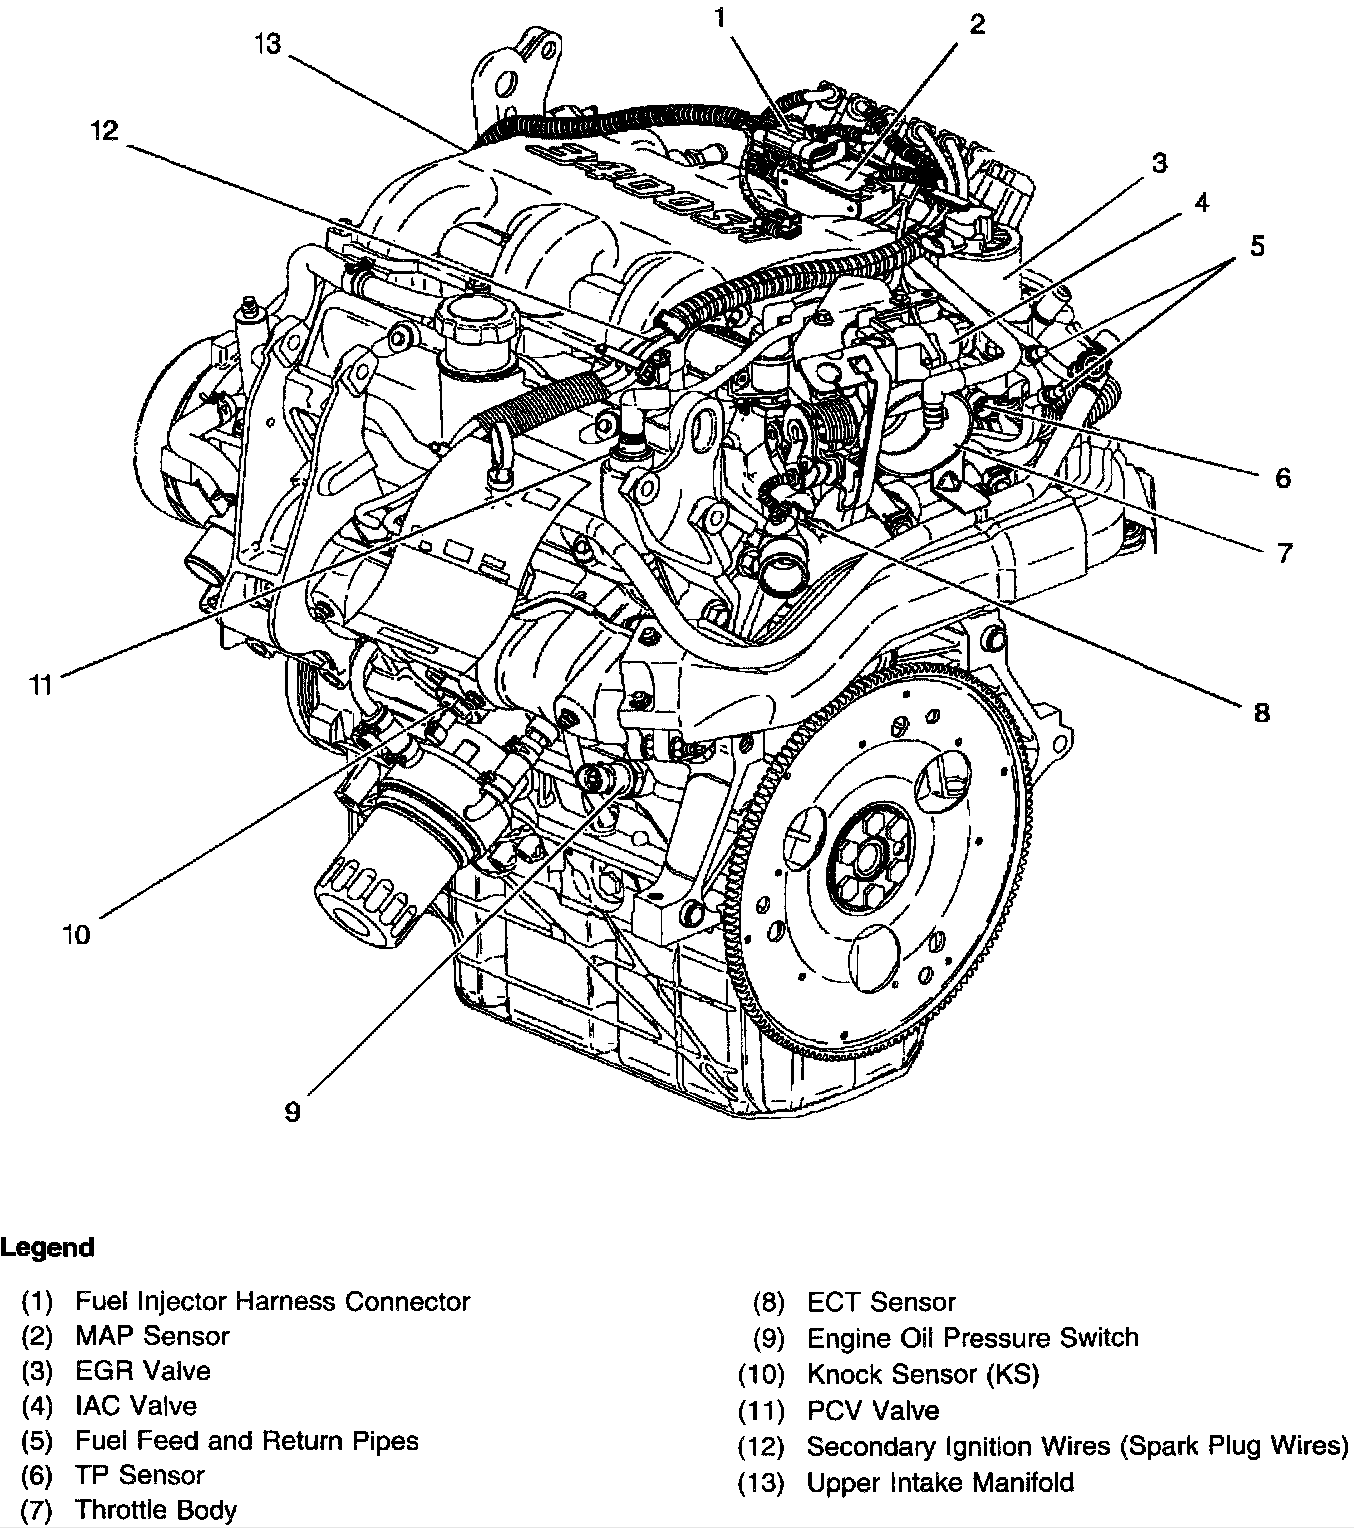 2003 chevy impala parts diagram 3400